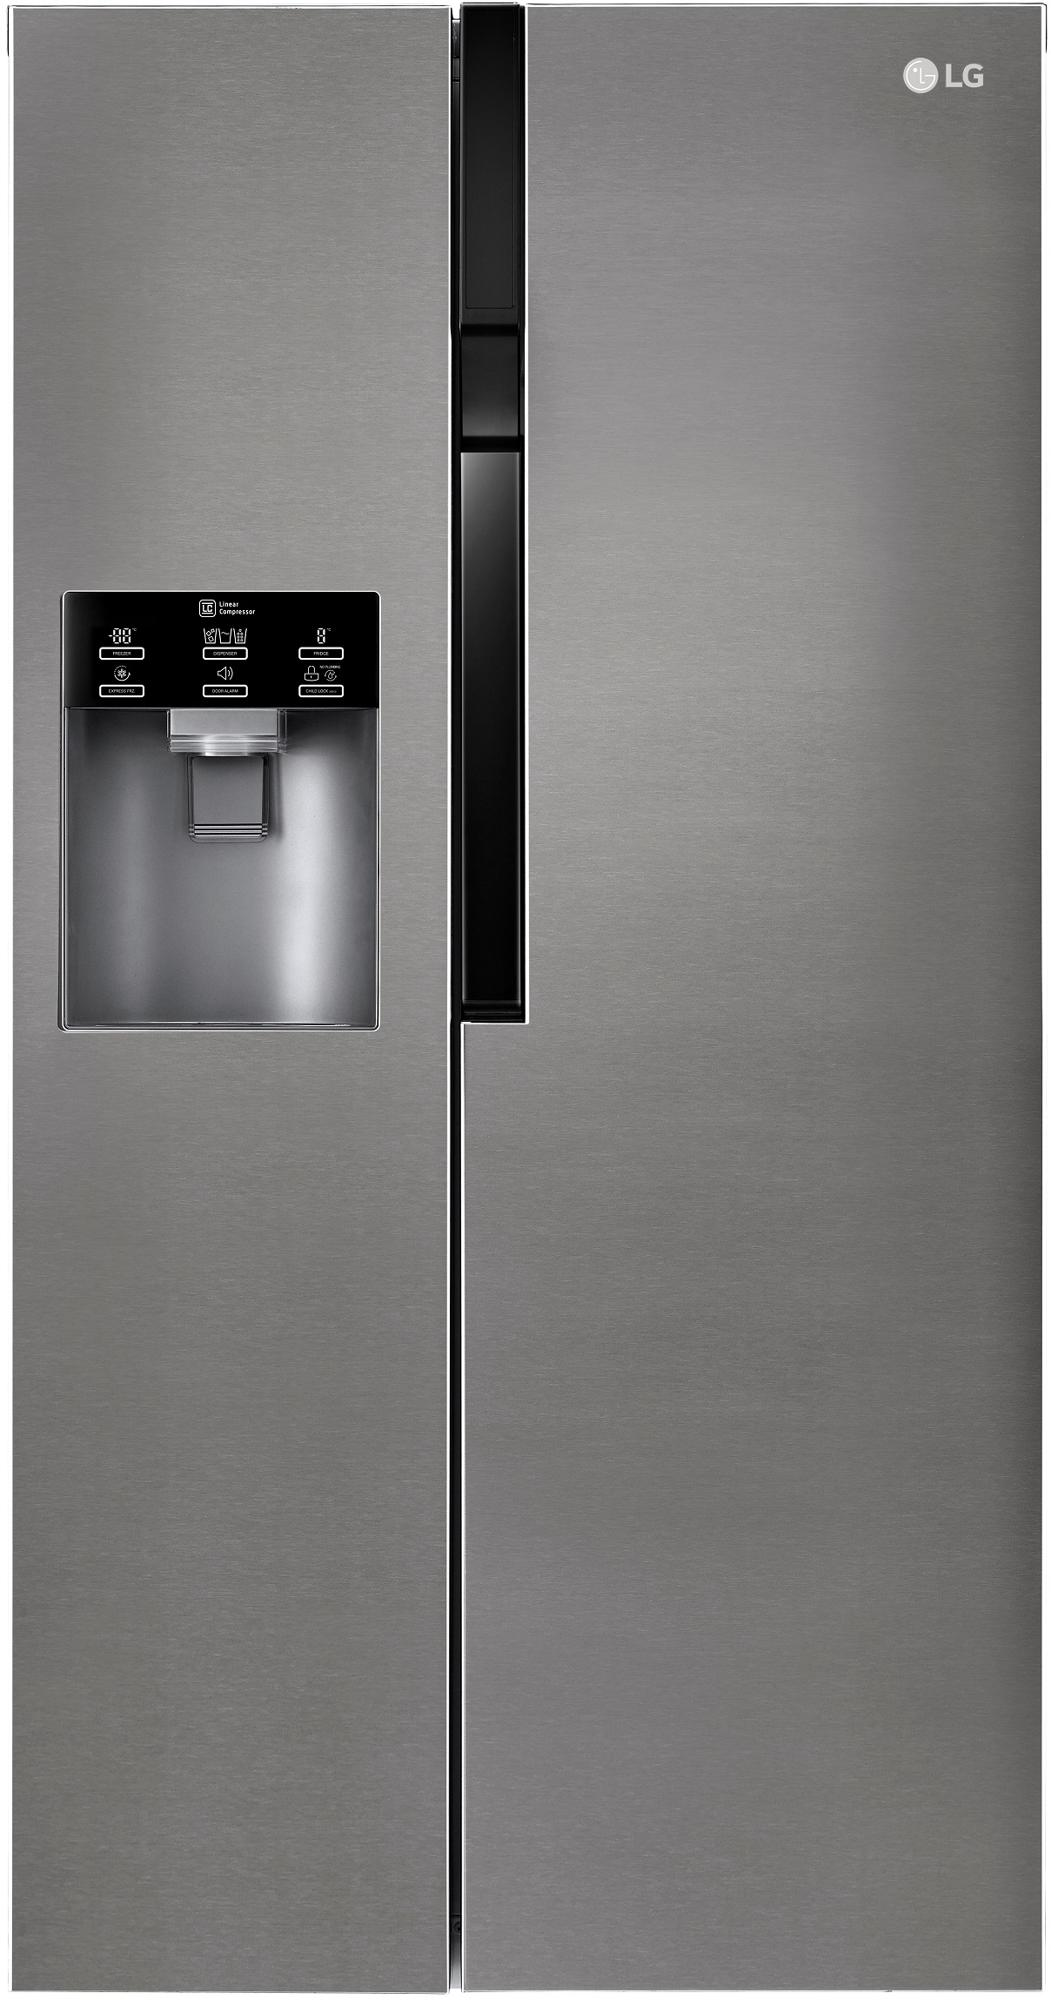 LG GSL361ICEZ A++ Side By Side, Dark Graphit, No Frost, Door